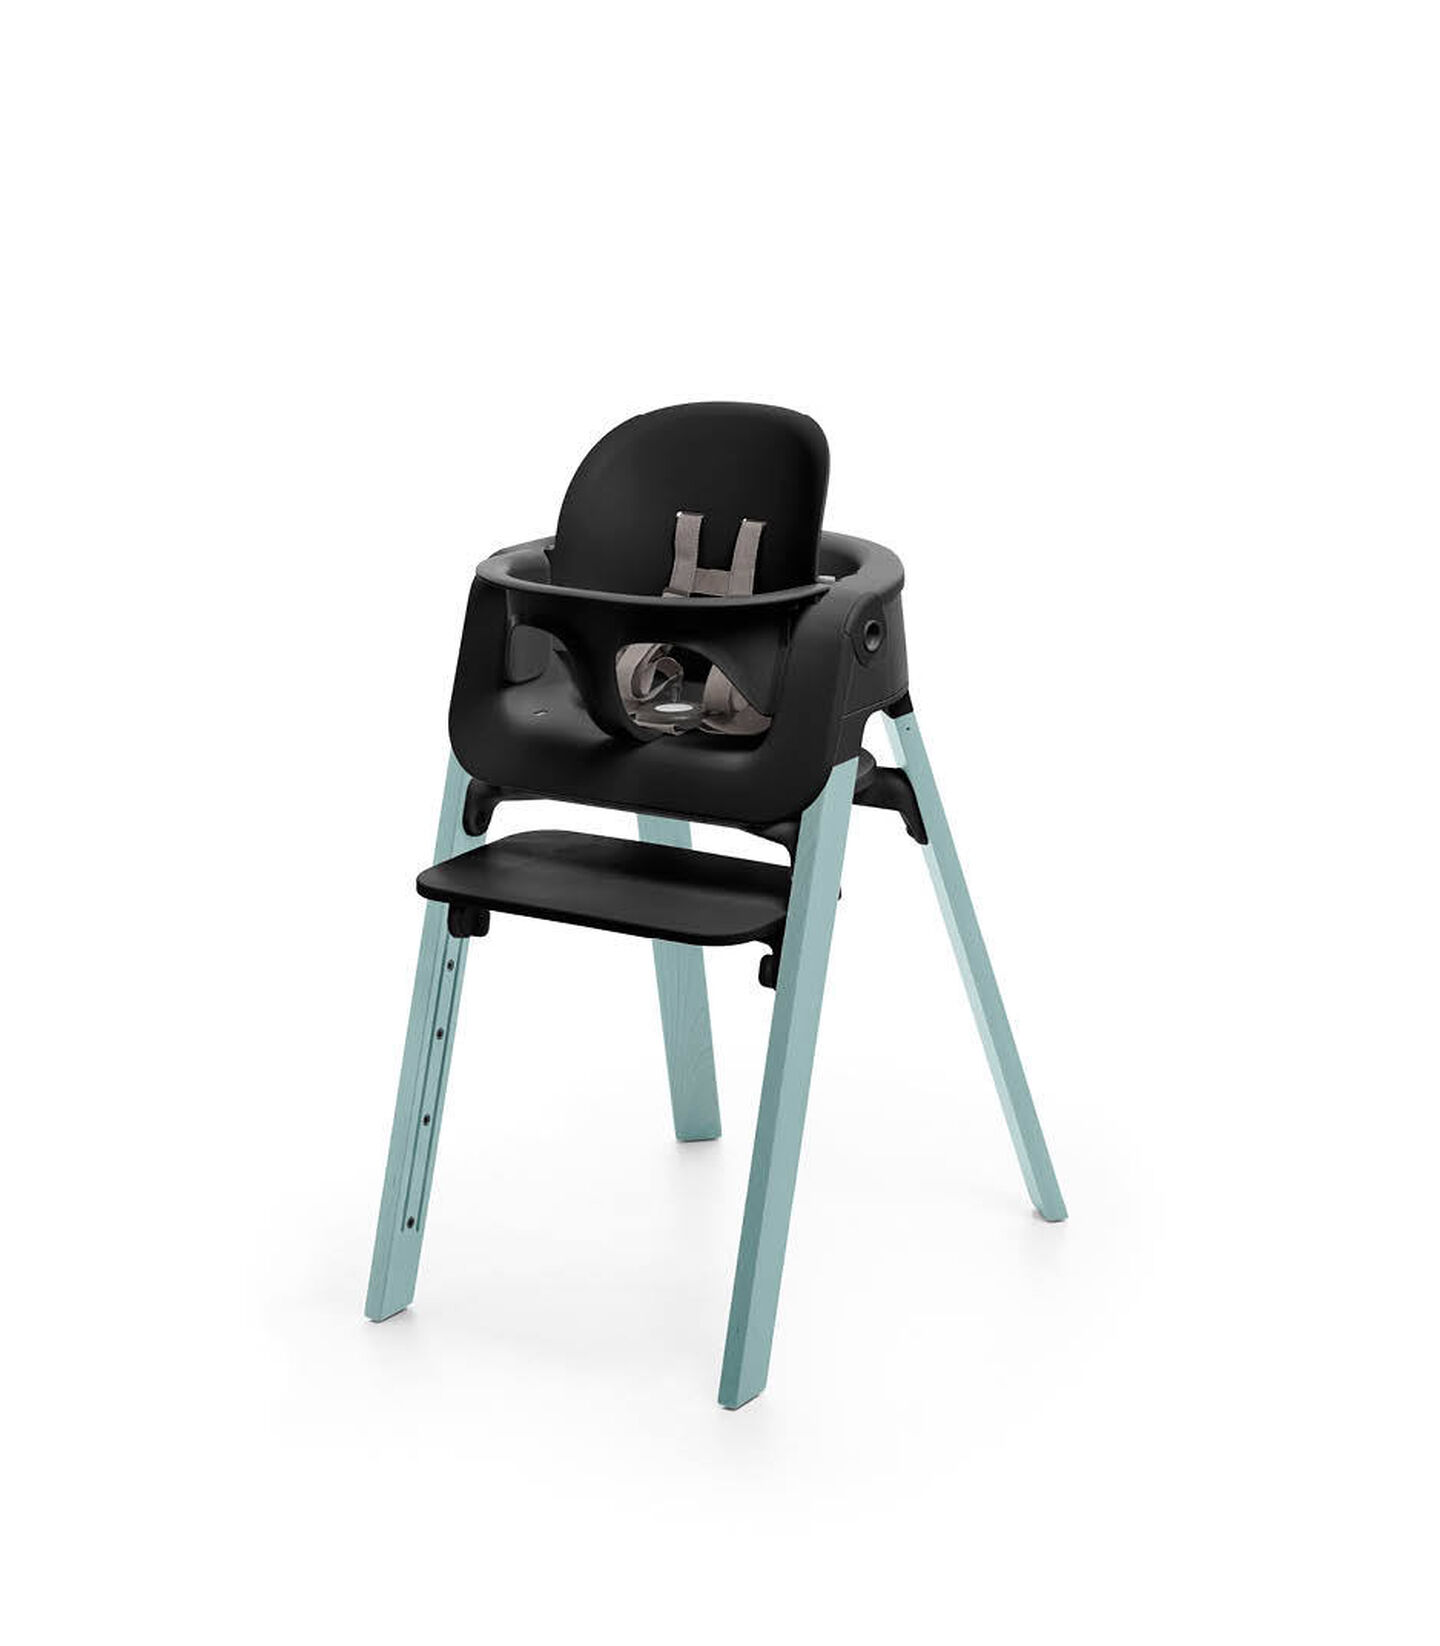 Stokke® Steps™ Aqua Blue chair with Baby Set Black.